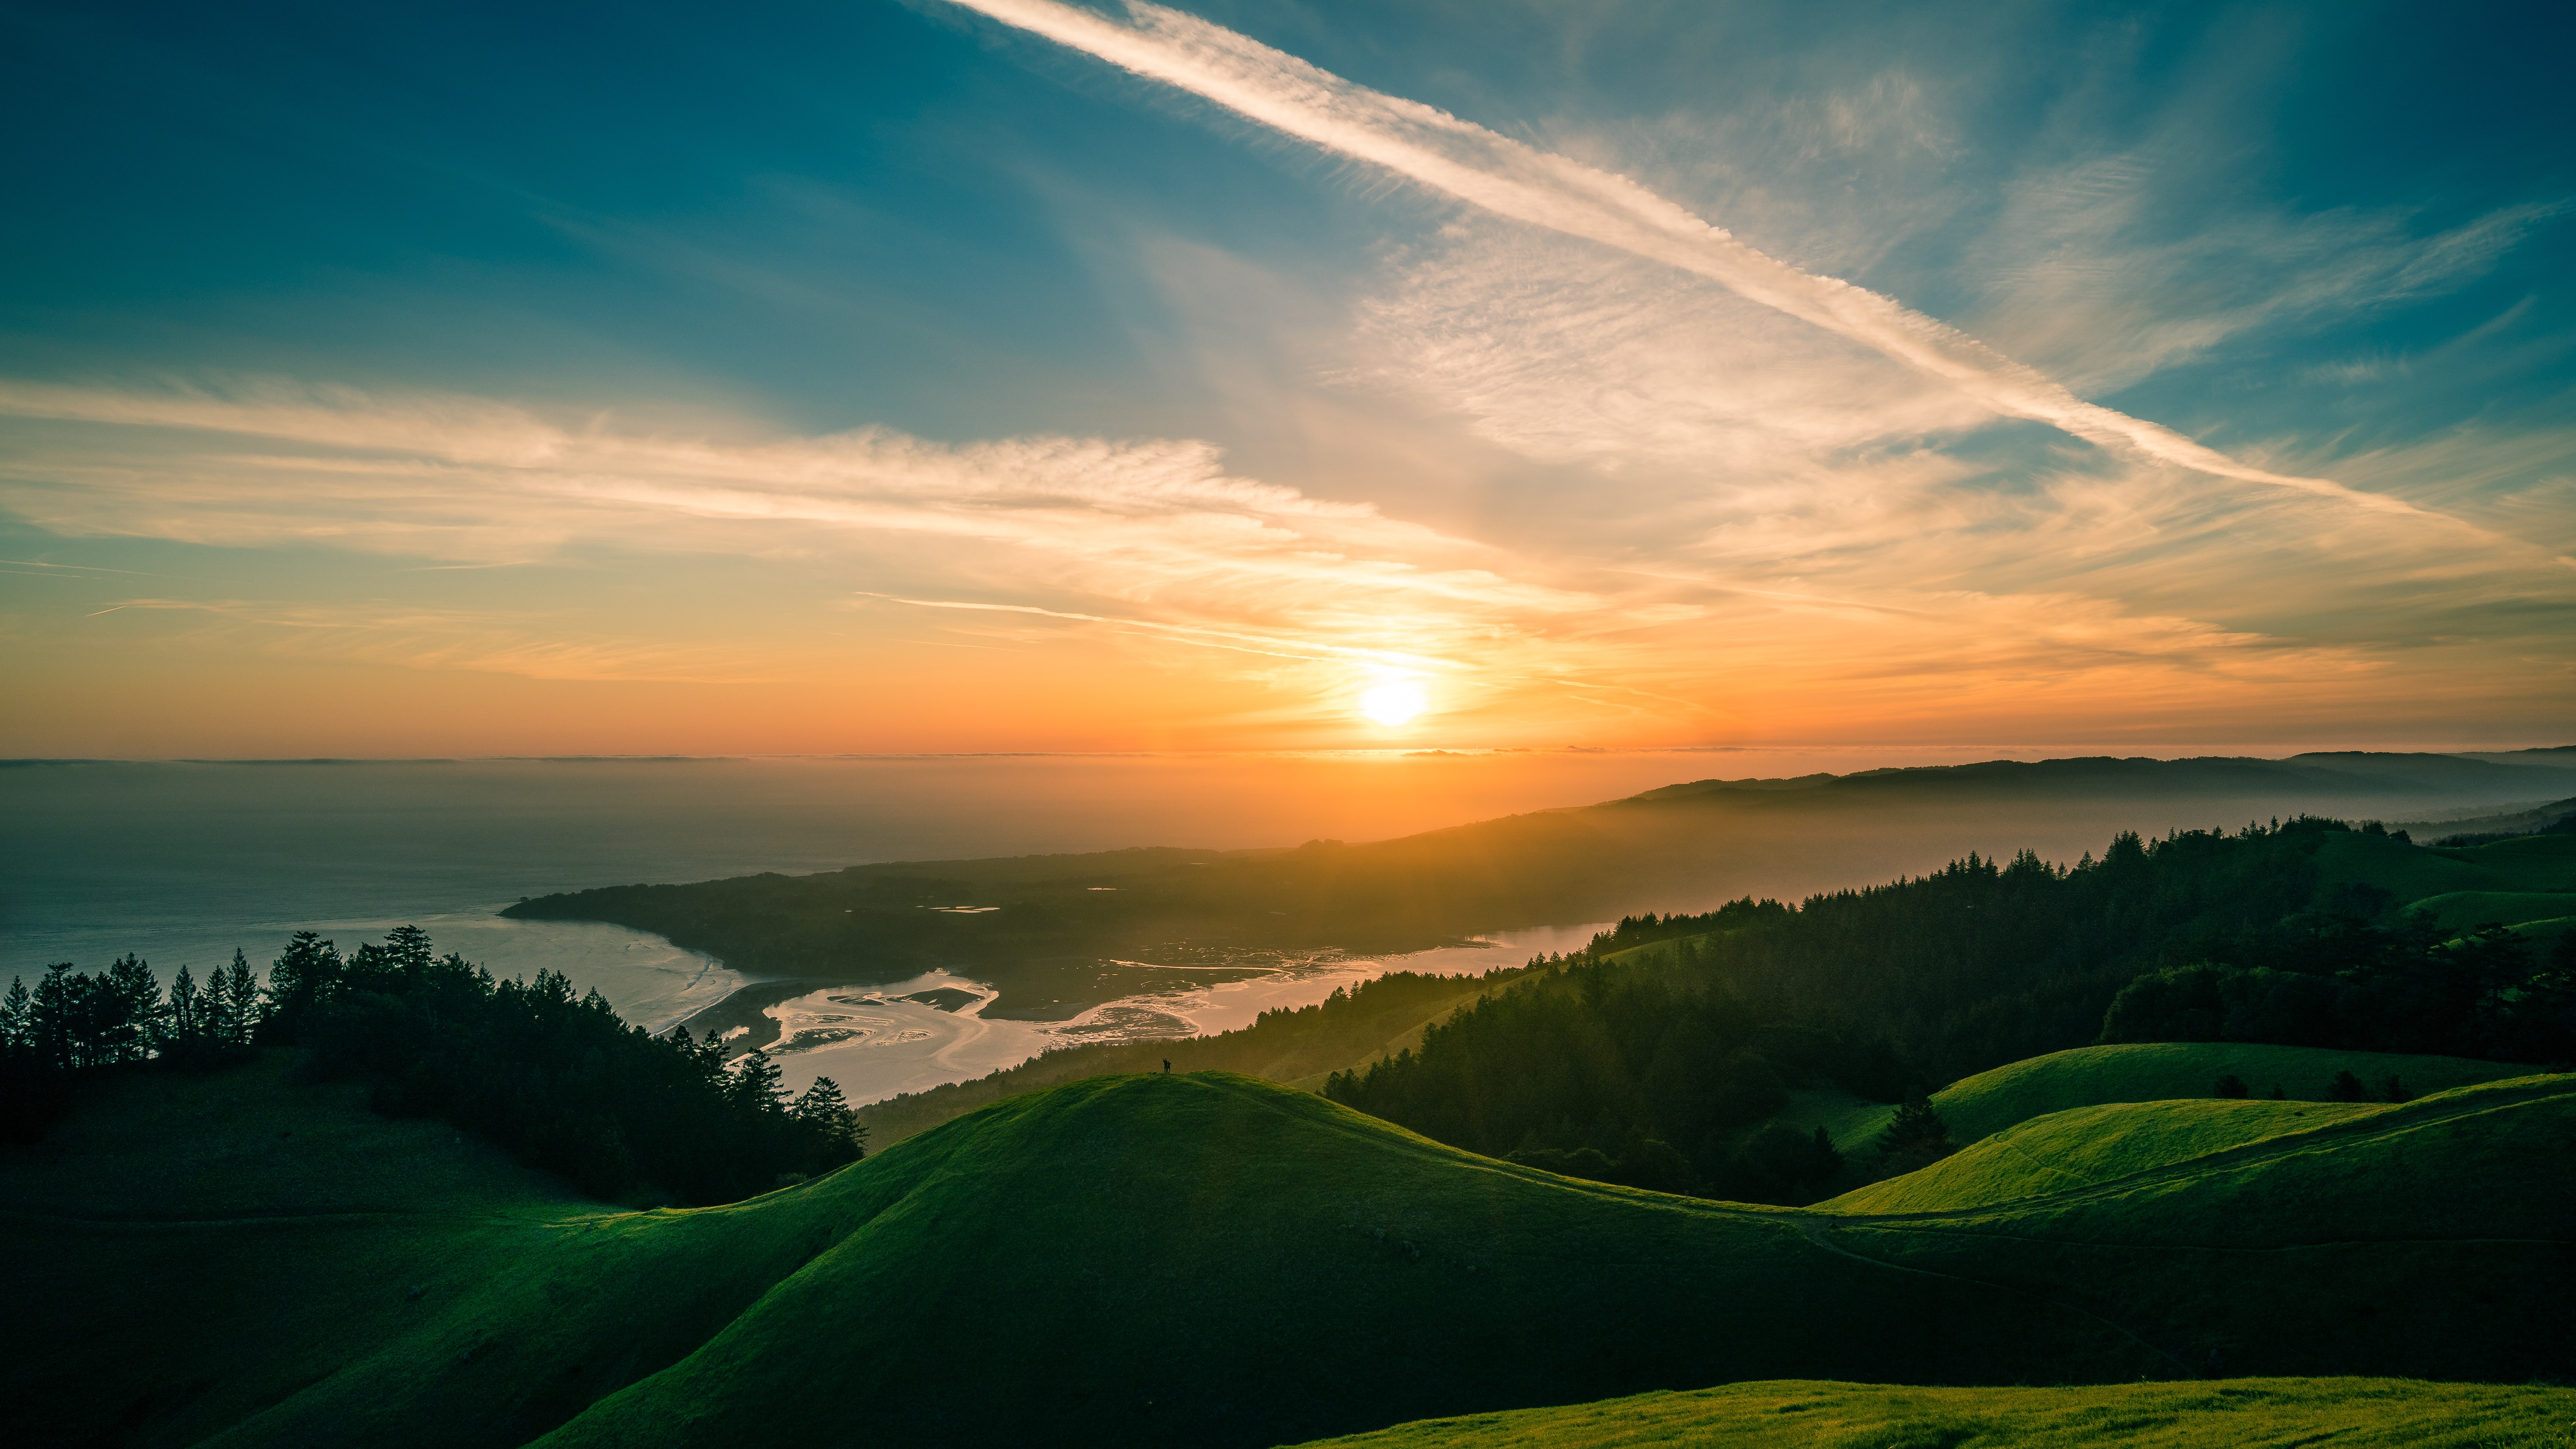 landscape photography of green mountains over the horizon